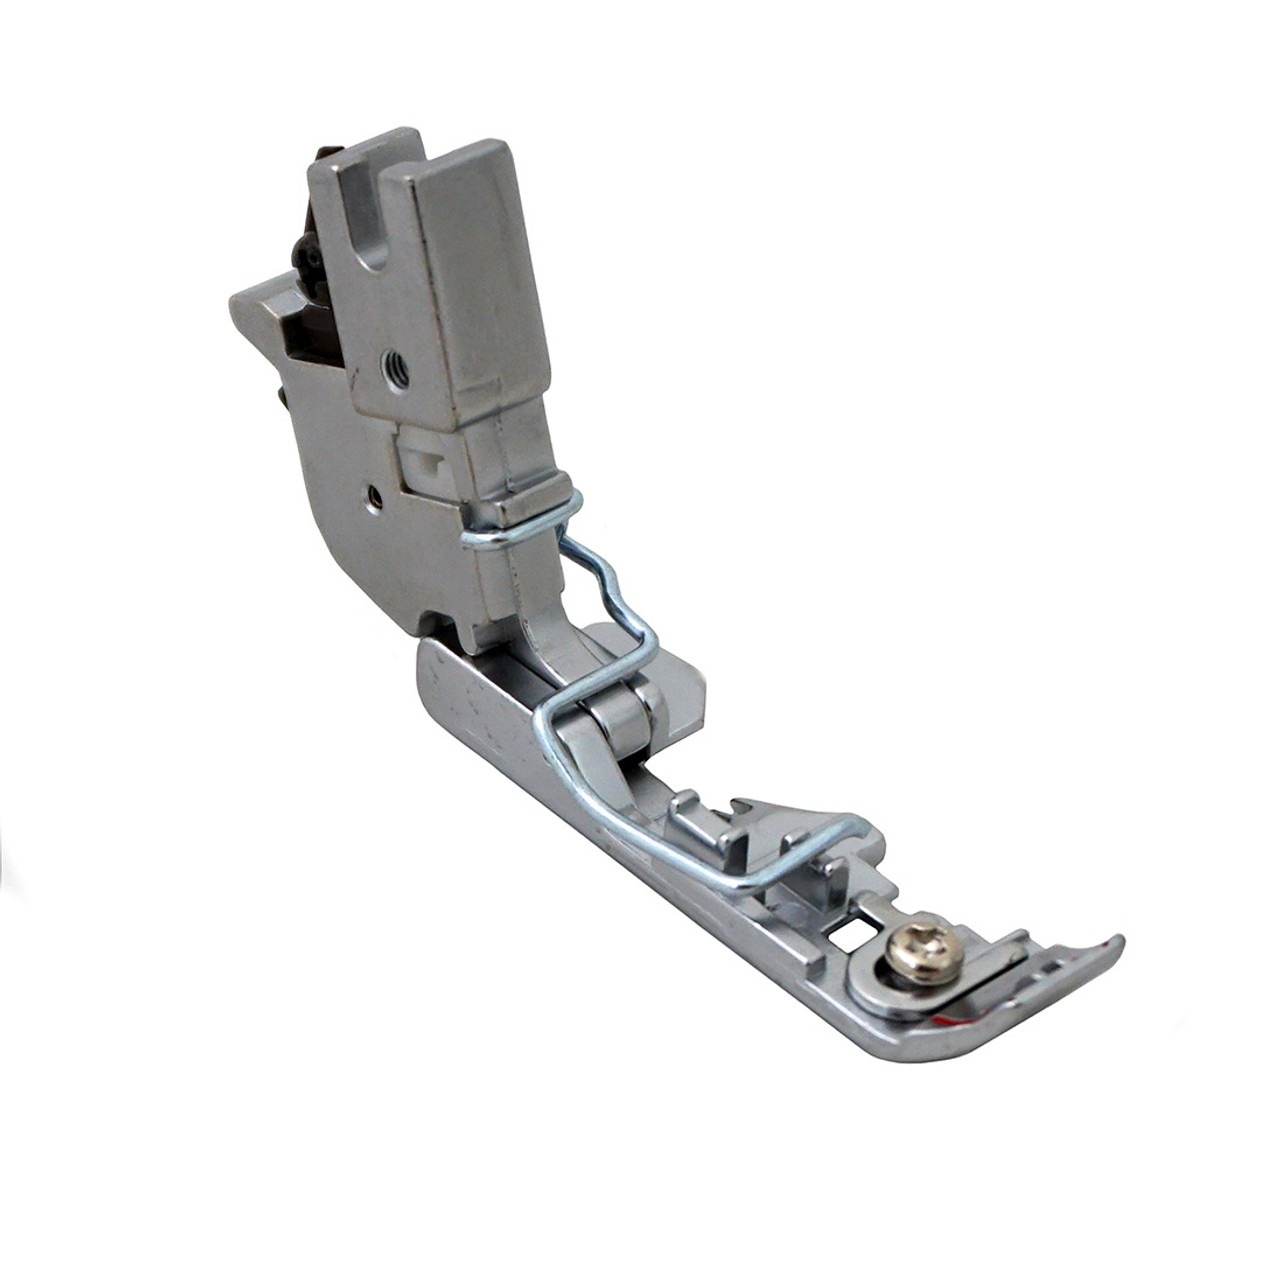 Juki Smooth Presser Foot for TL Series Sewing Machines A9840D250A0